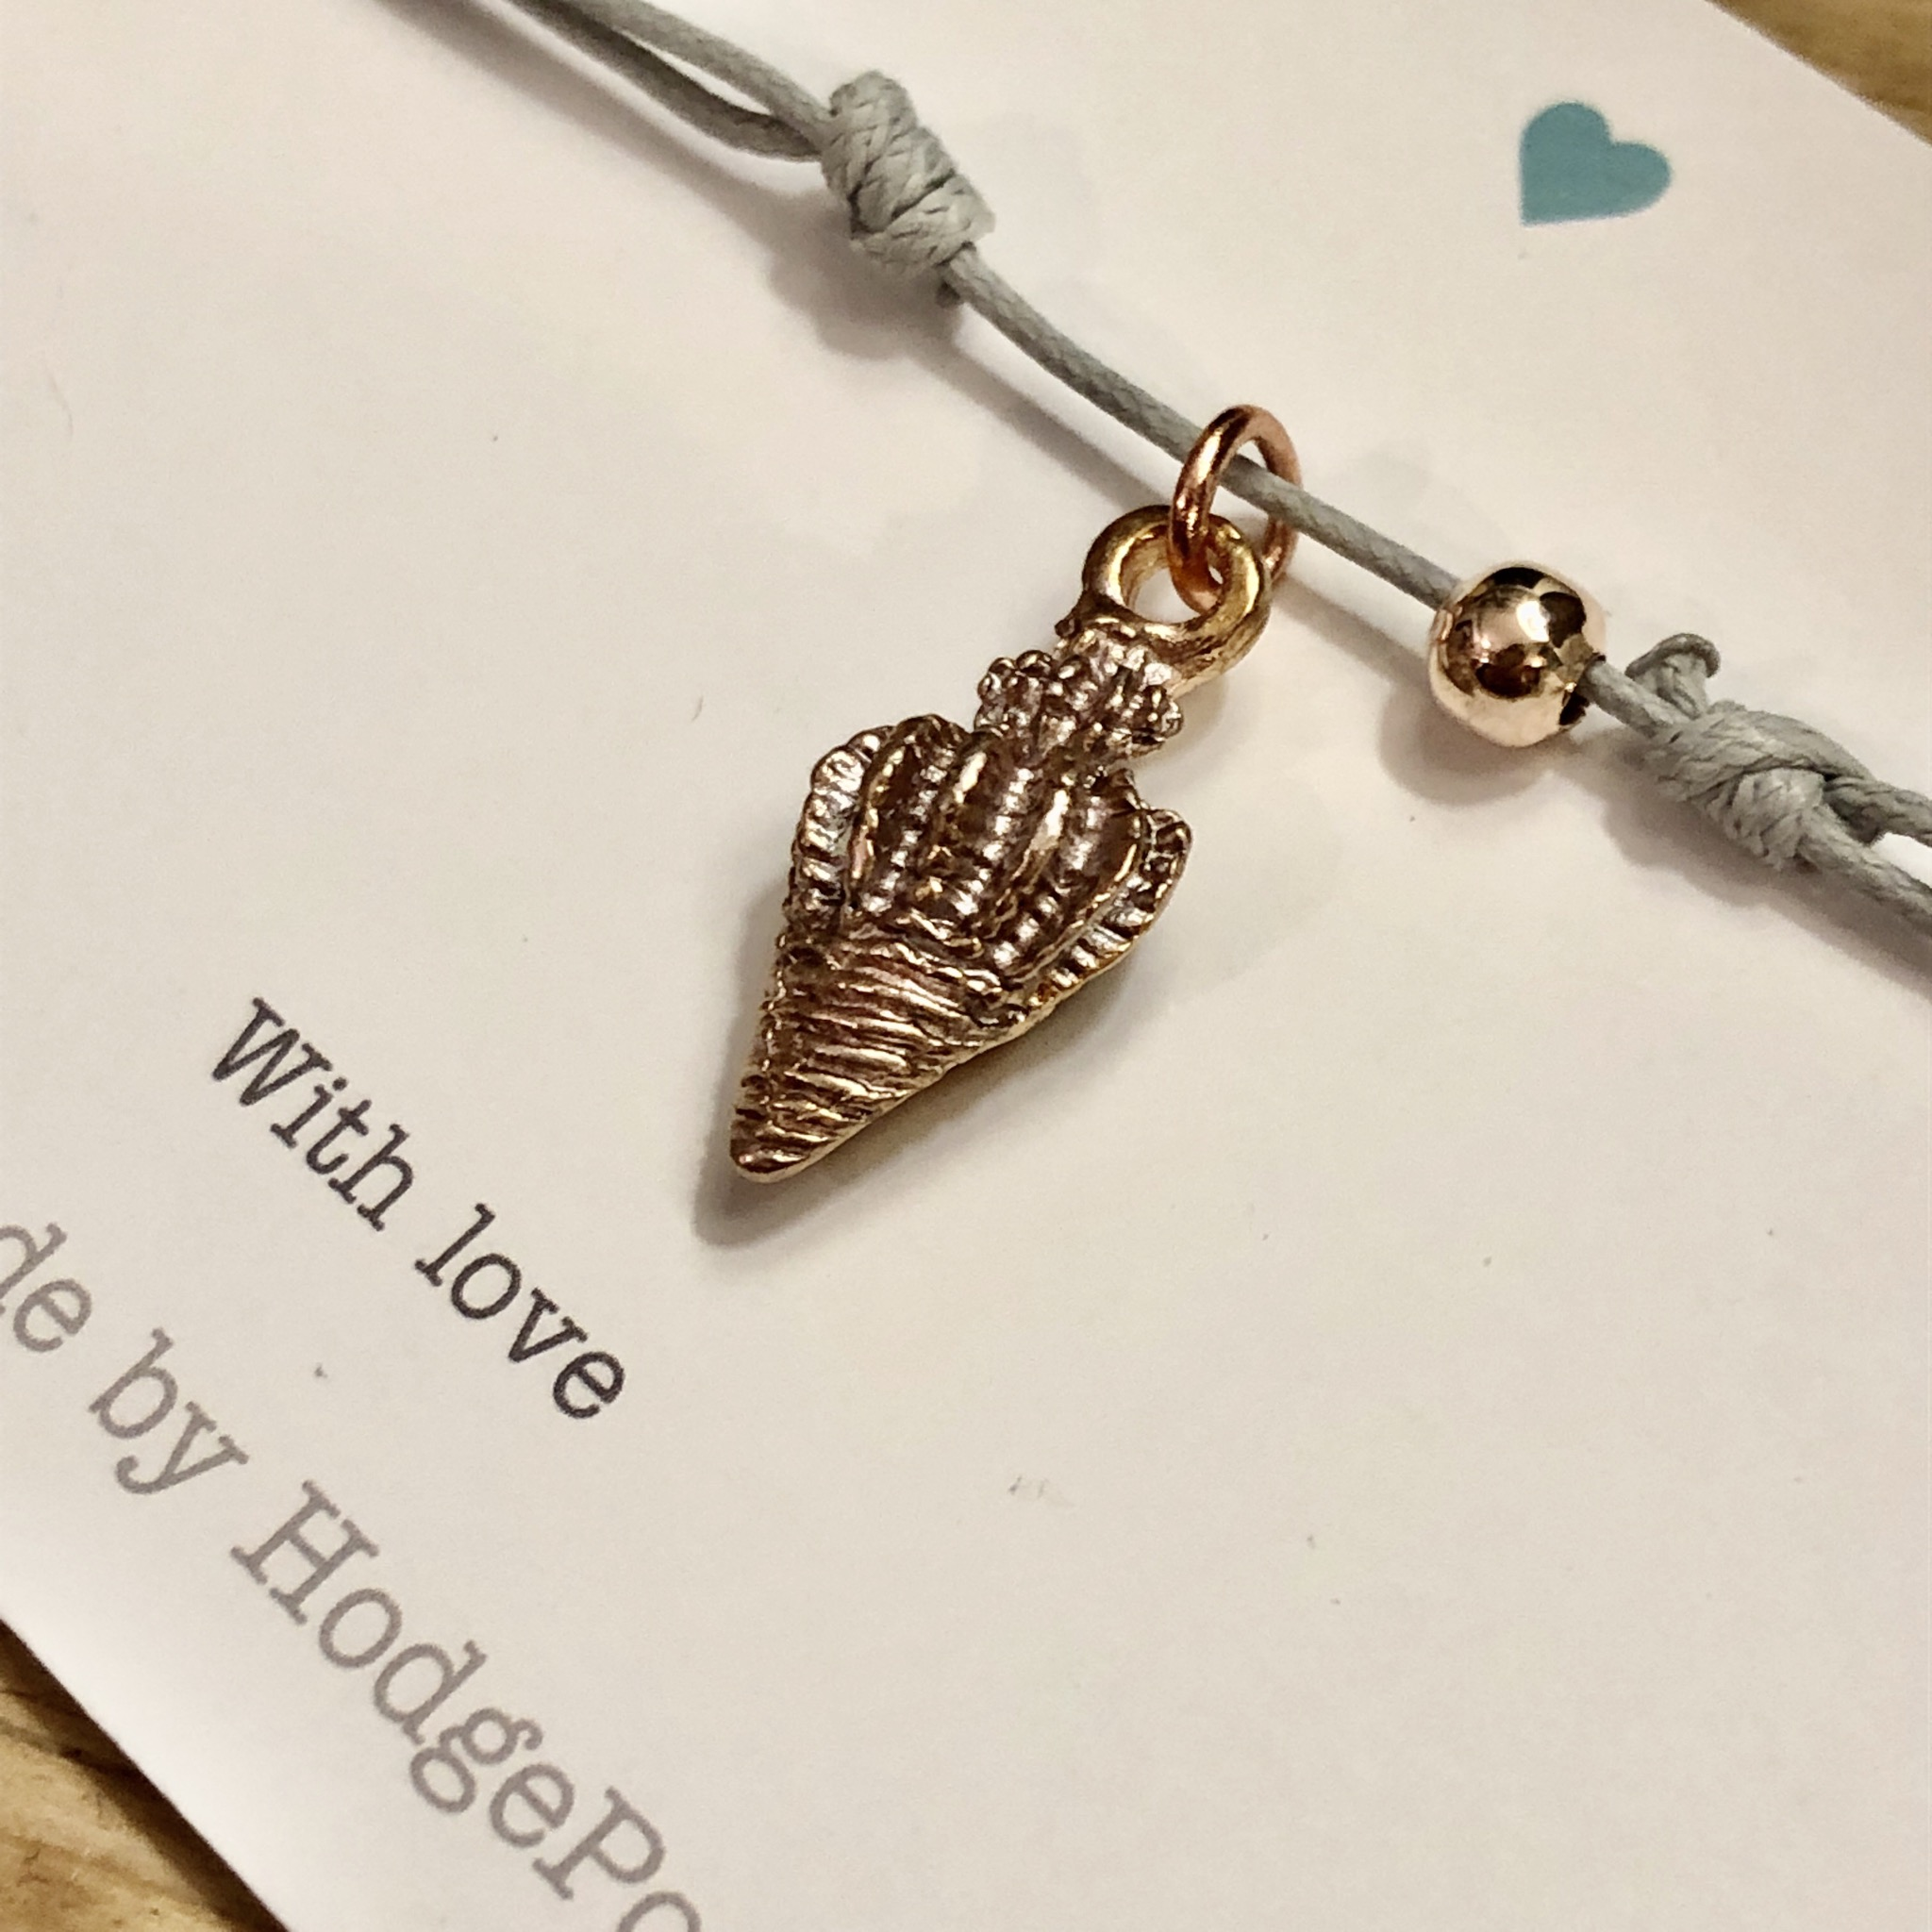 Spiral Shell charm adjustable cord bracelet 5 colours to choose from